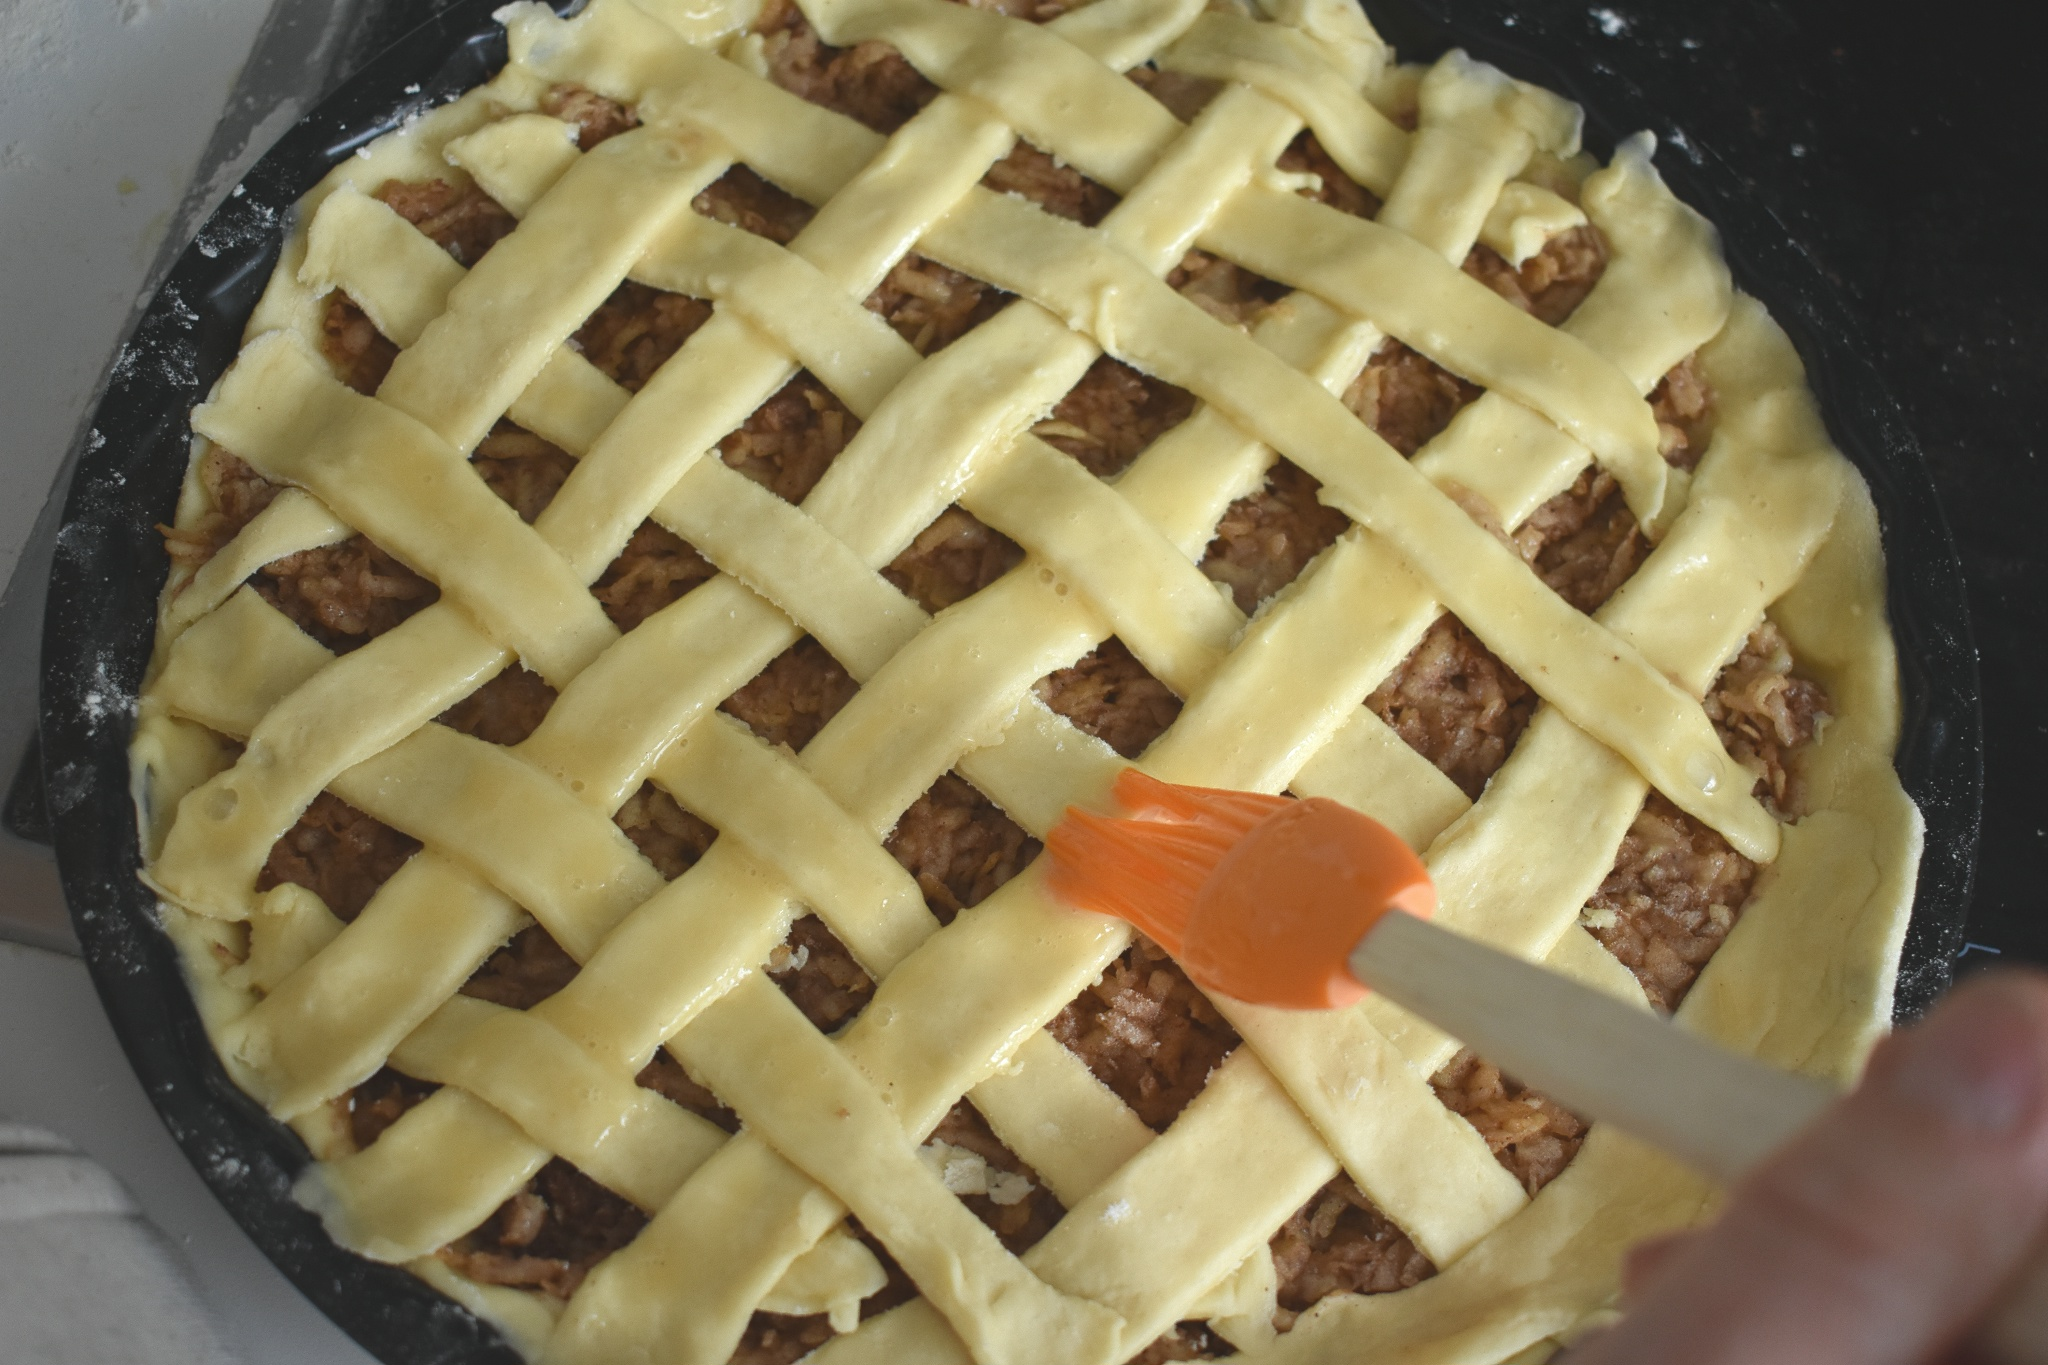 Sugar-free-apple-pie-process-19-SunCakeMom